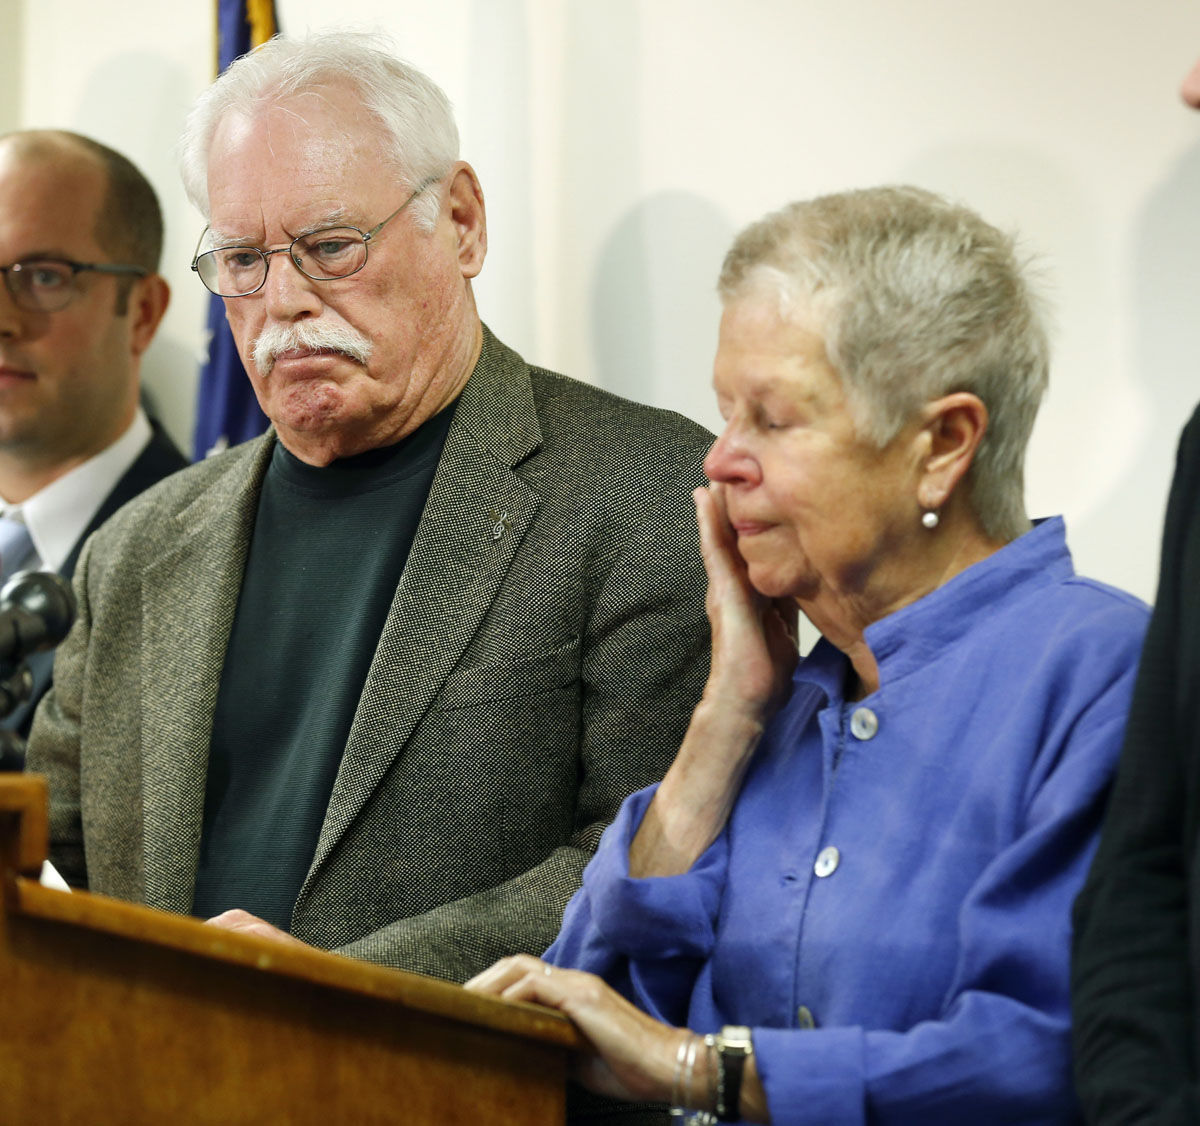 Mary Lyon, right, wipes a tear as she and John Lyon, parents of Sheila and Katherine Lyon, speak to the media after a plea by Lloyd Lee Welch Jr., for the killings of their daughters in 1975, in Bedford County Circuit Court in Bedford, Va., Tuesday, Sept. 12, 2017. Welch plead guilty to two first degree murder charges and was sentenced to two consecutive 48-year prison terms. (AP Photo/Steve Helber)